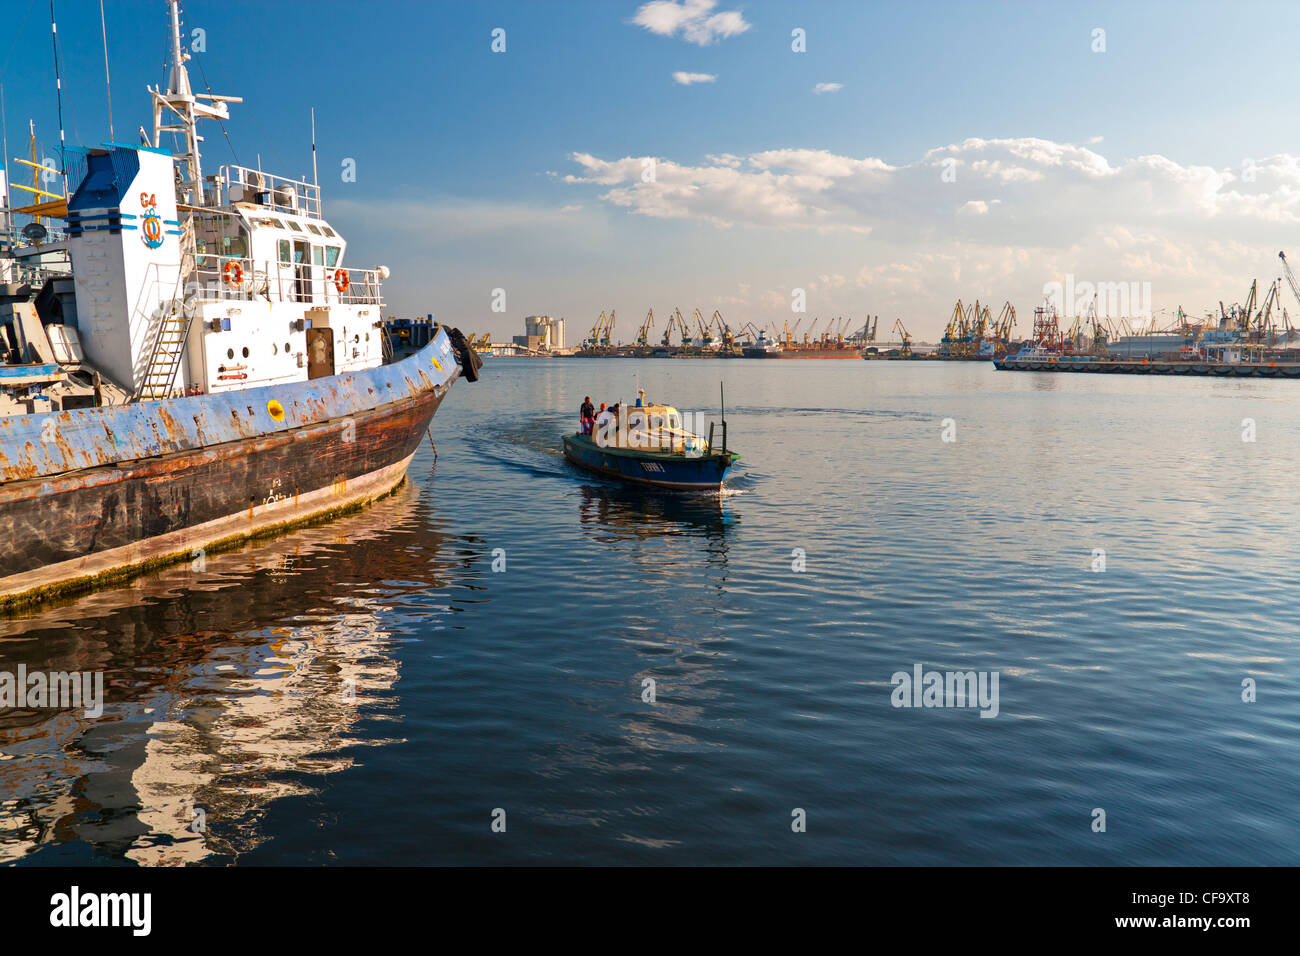 Small boat is passing by a docked towboat. - Stock Image